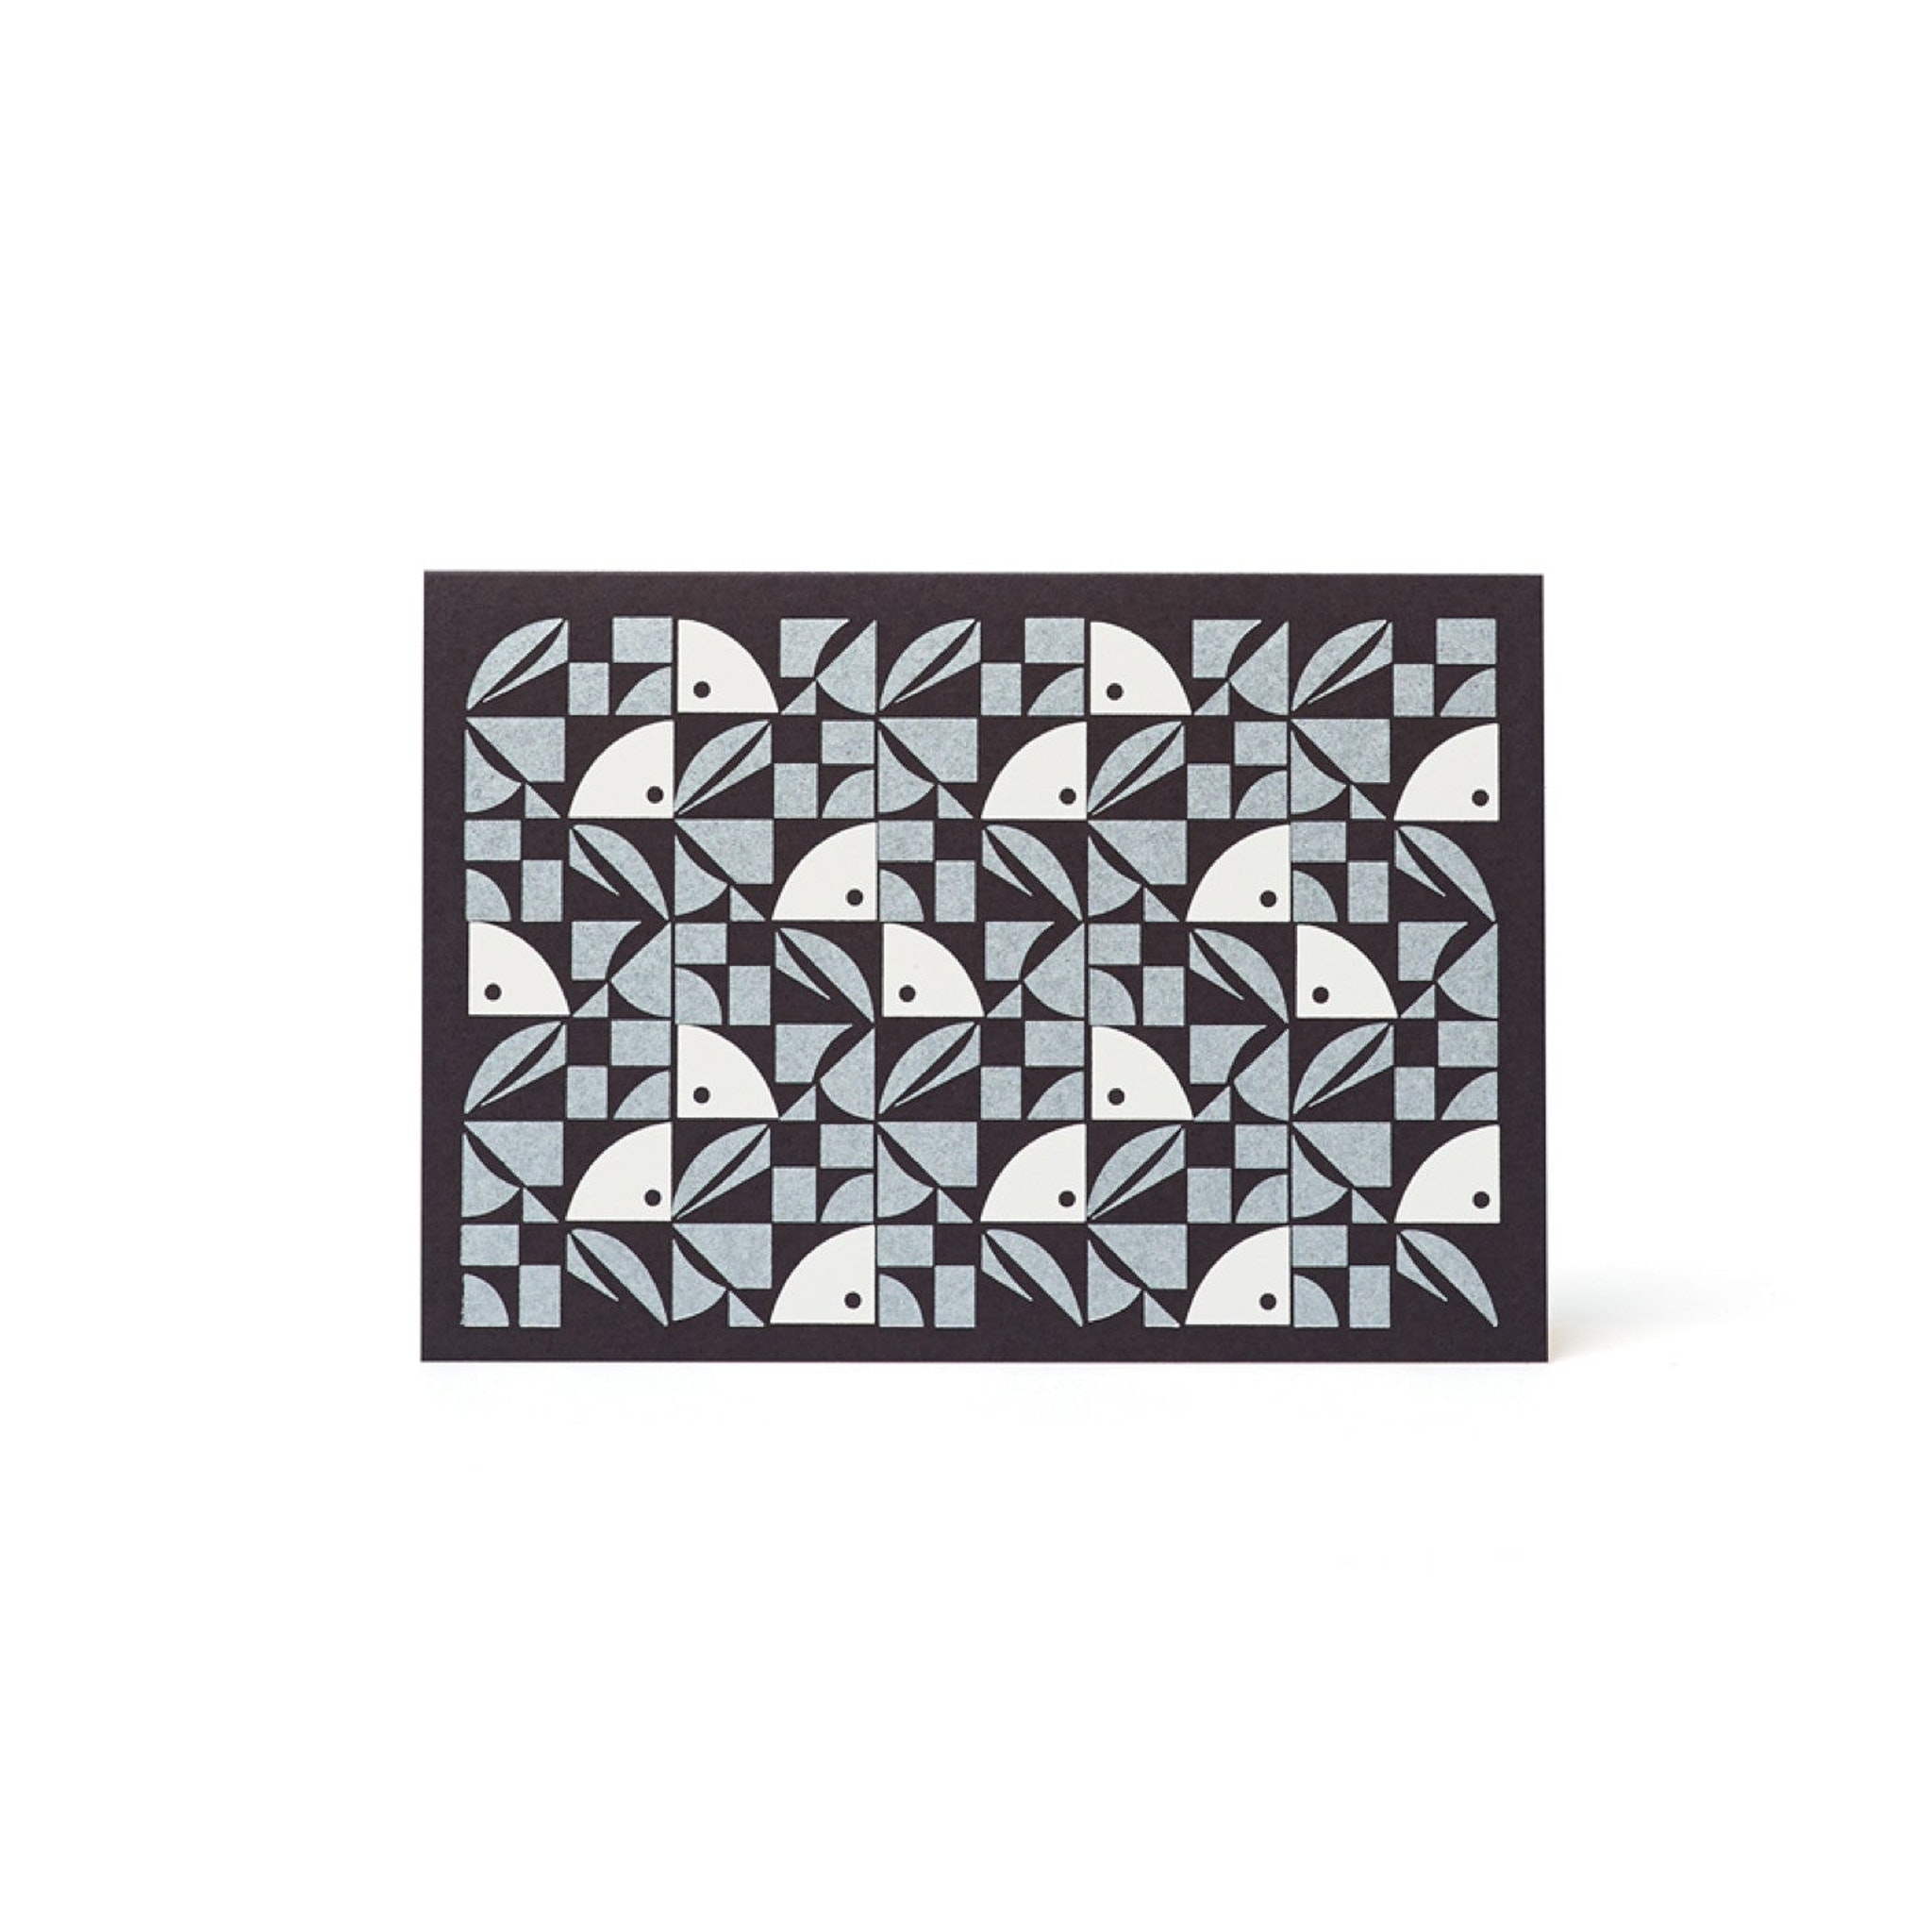 Bloom Letterpress Card - Navy and Silver by Esme Winter